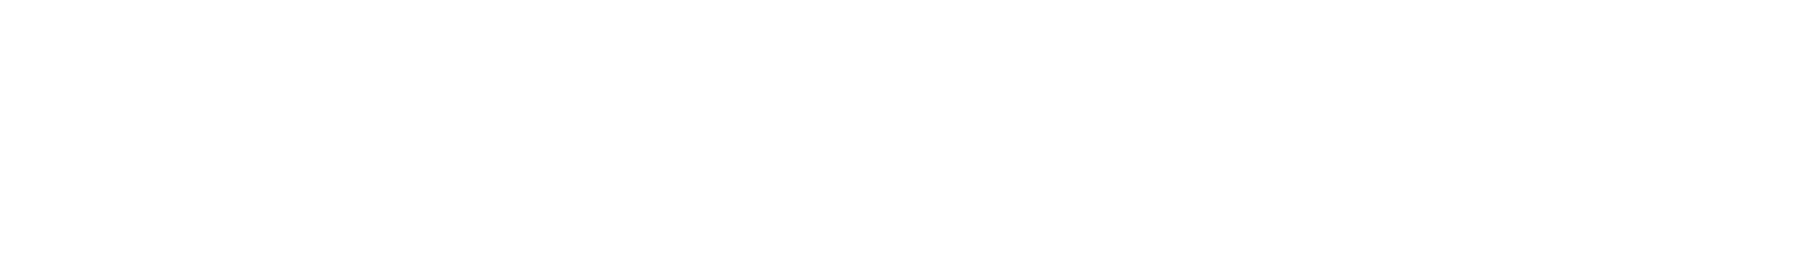 veh1 cutted sounds   048